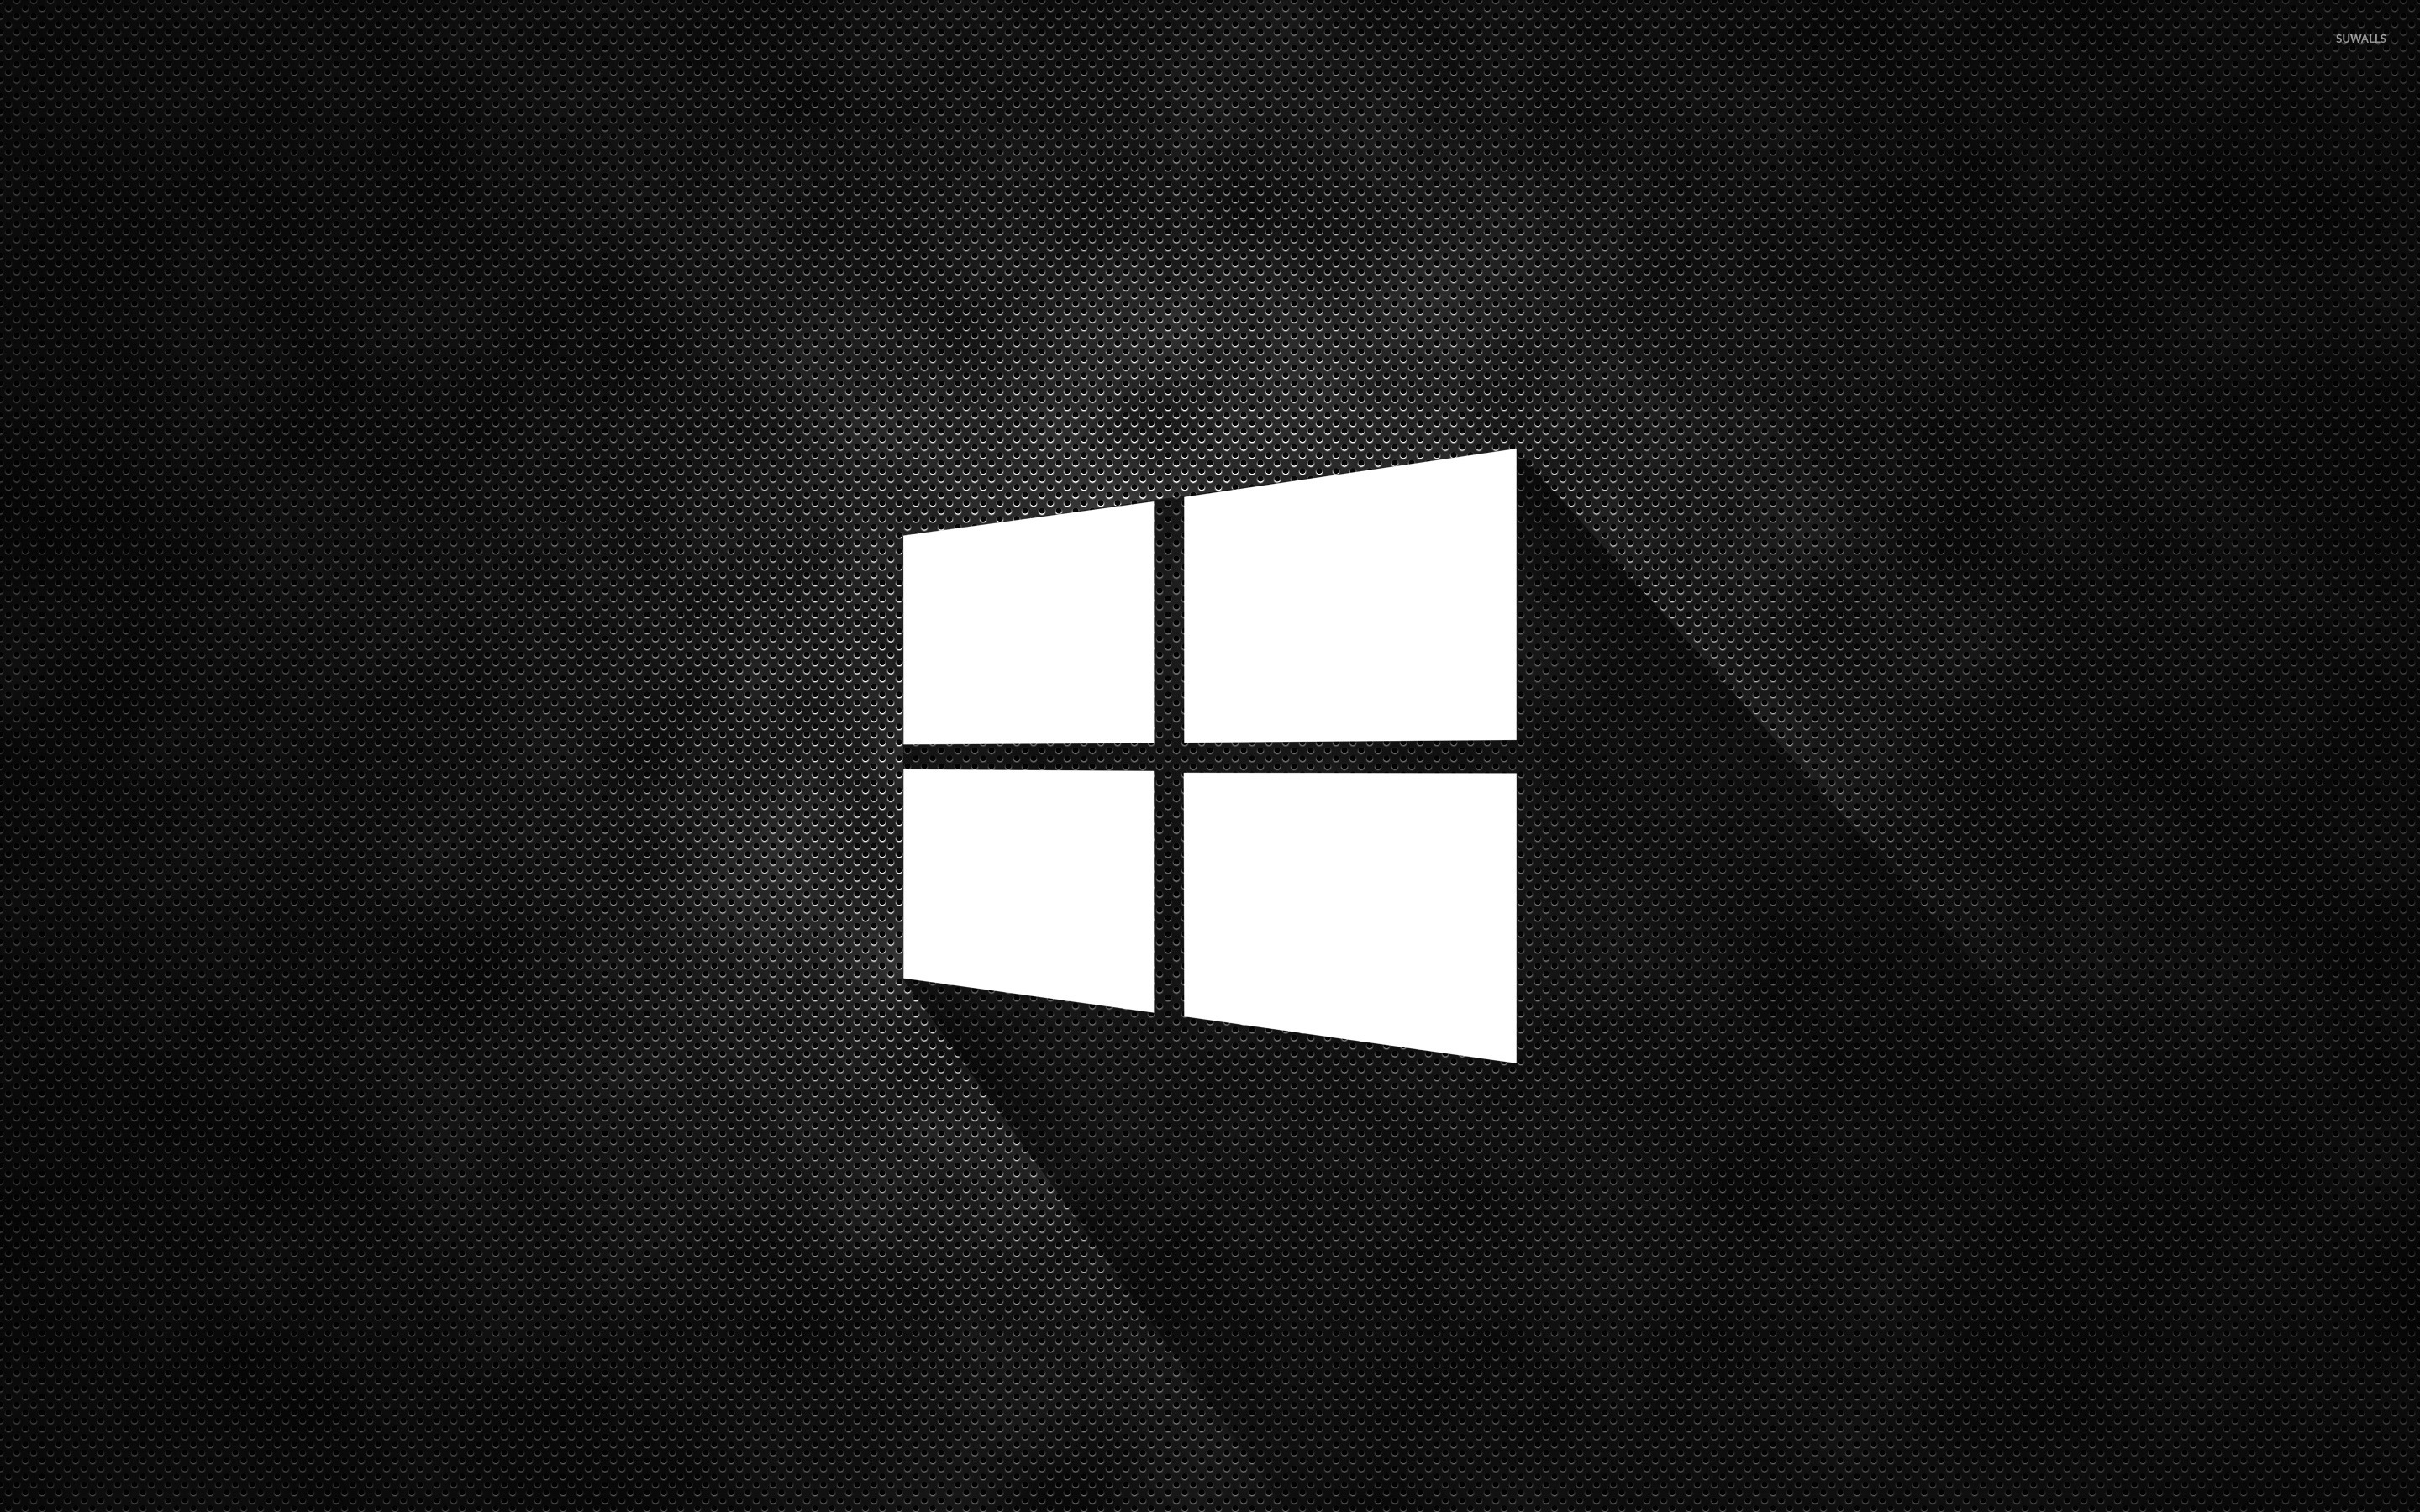 windows 10 simple white logo on black wallpaper computer wallpapers 45707. Black Bedroom Furniture Sets. Home Design Ideas